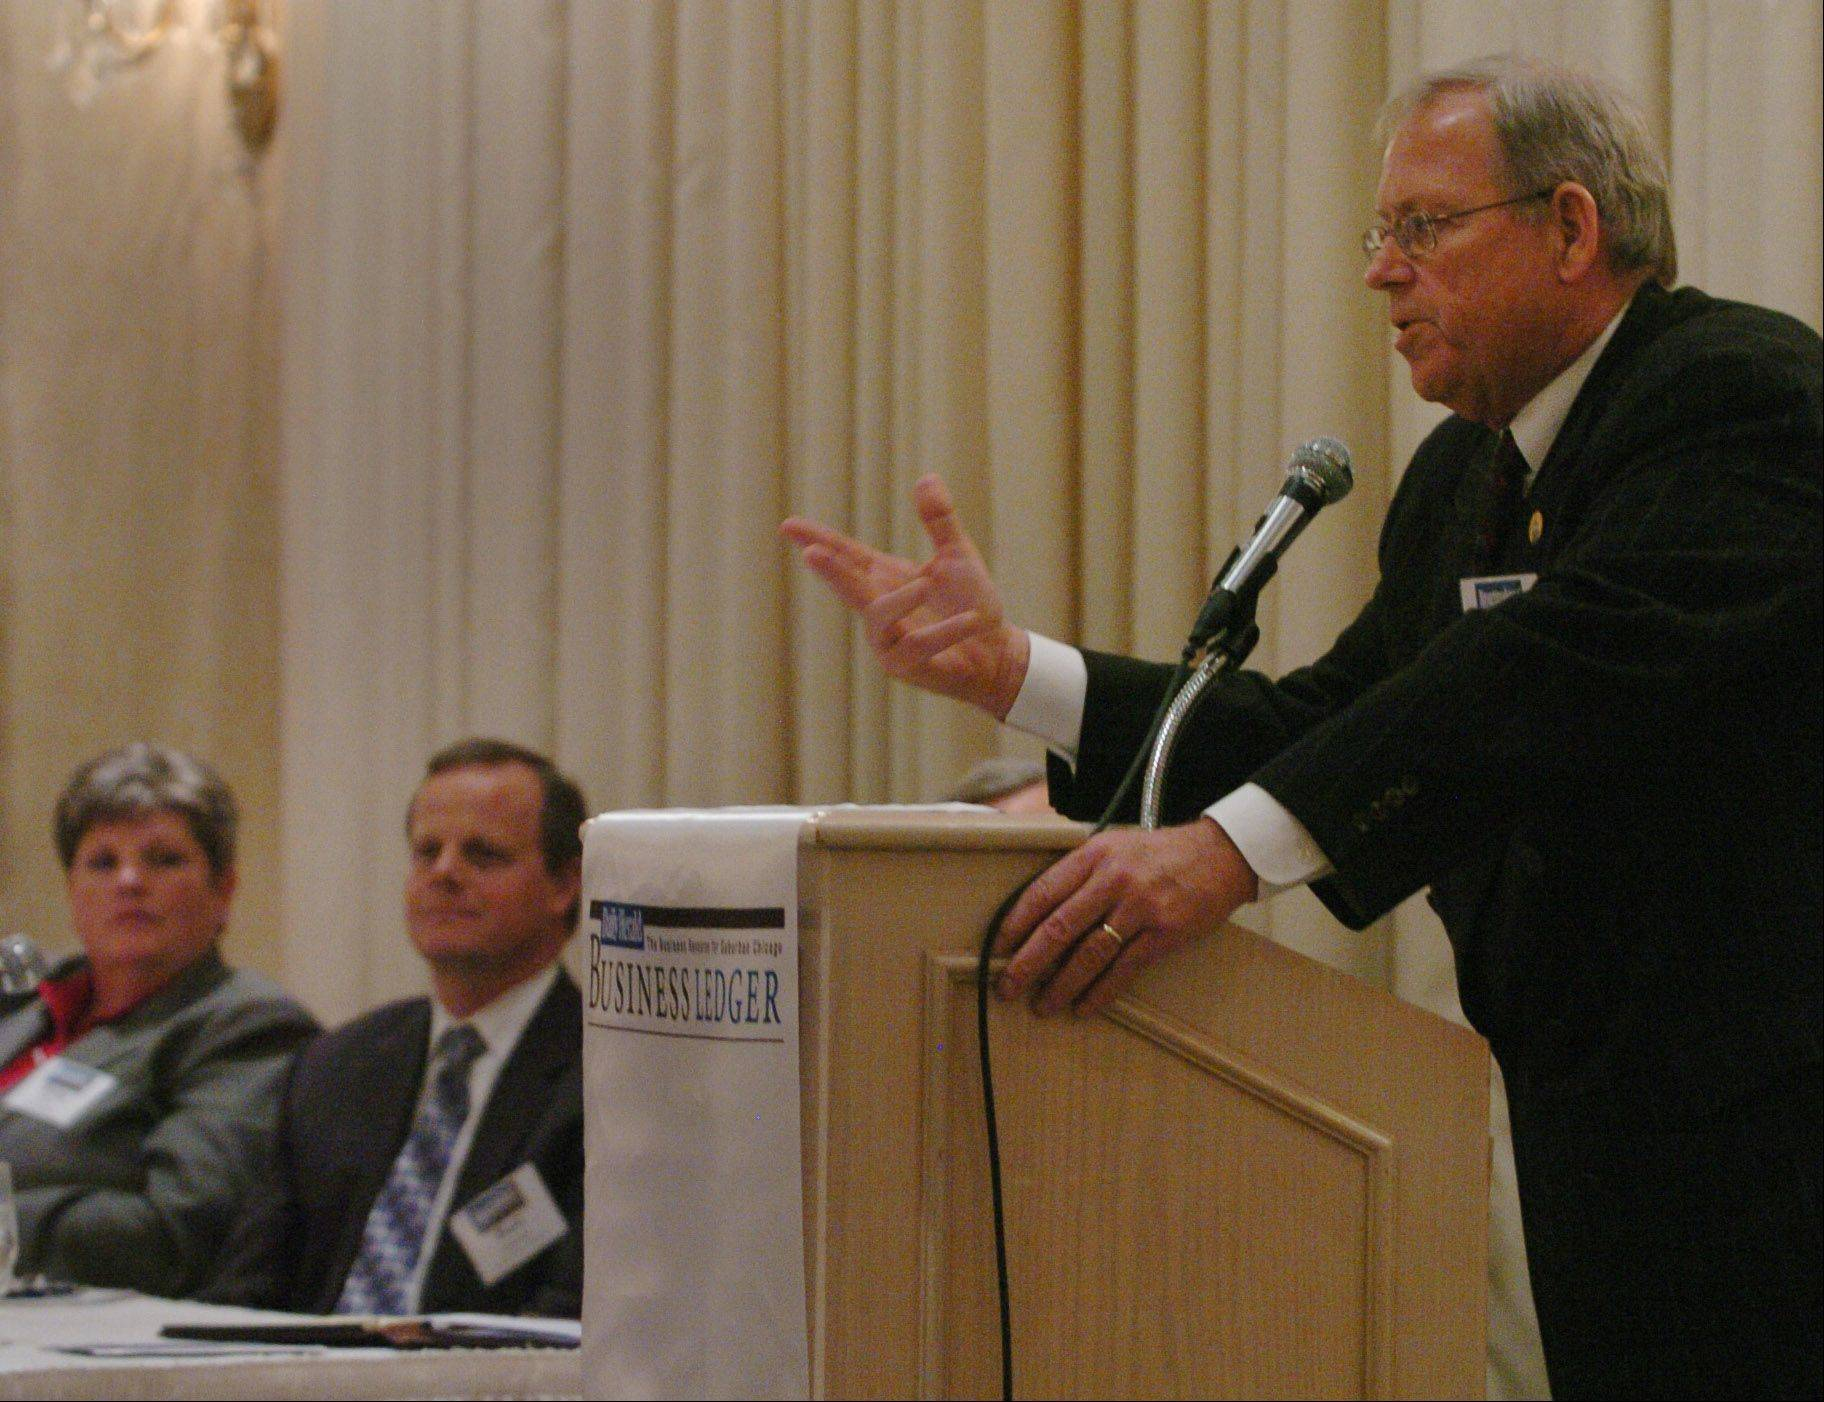 Douglas Whitley, president and CEO of the Illinois Chamber of Commerce, speaks at the Daily Herald Business Ledger Newsmakers Forum: Business Outlook 2013.